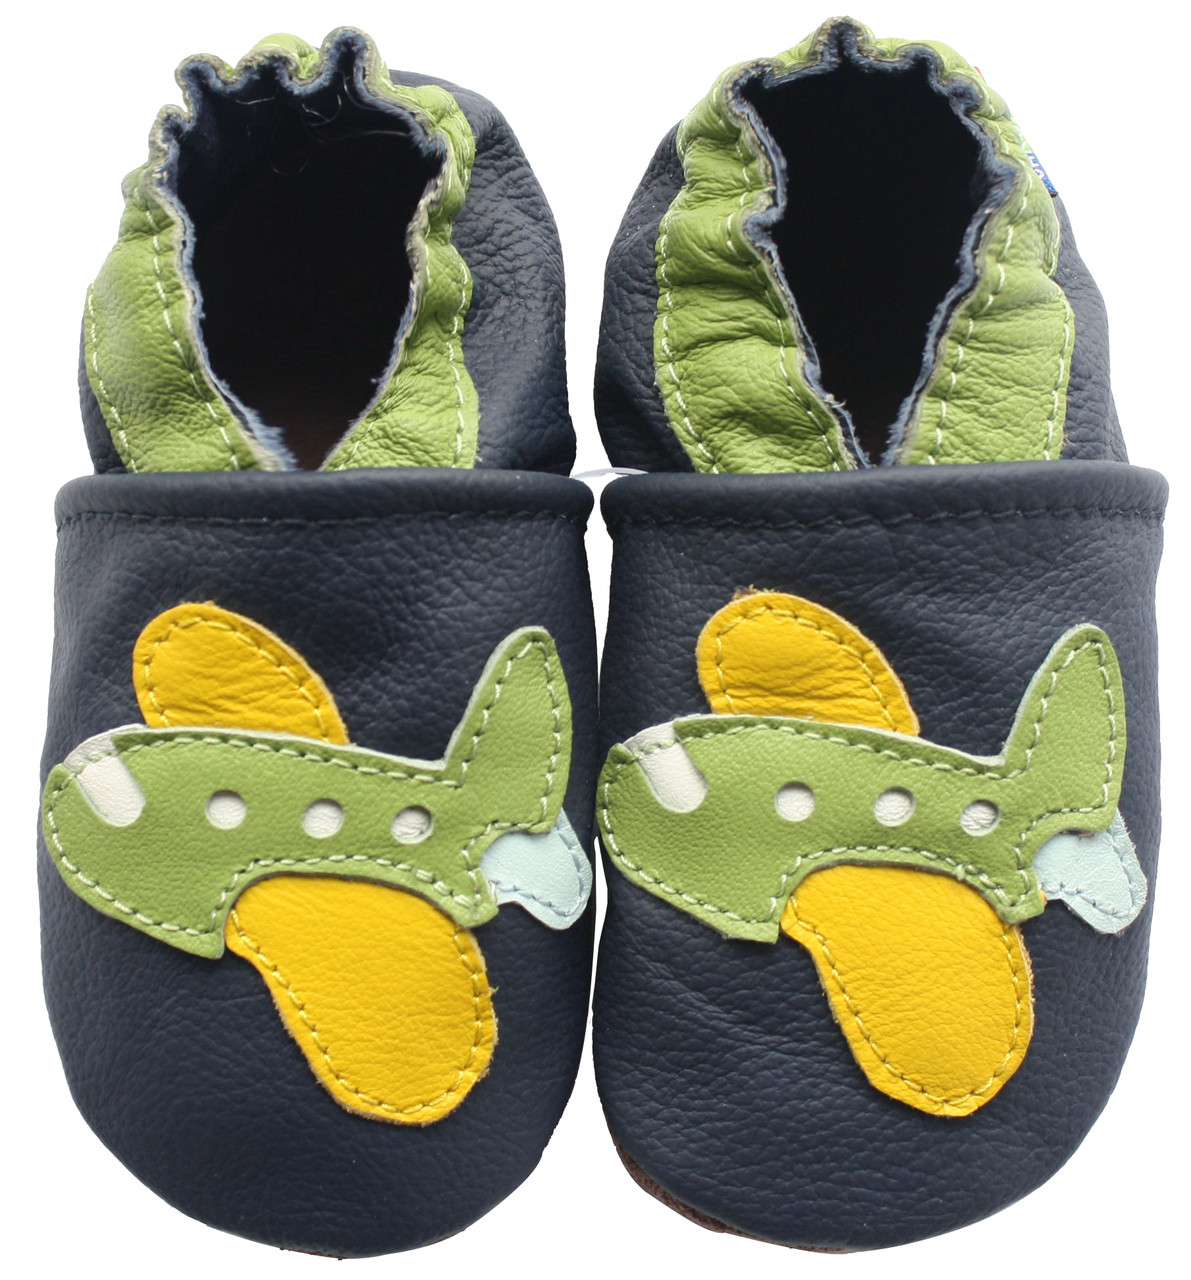 Carozoo baby boy soft sole leather infant toddler kids shoes Police Car Green 12-18m